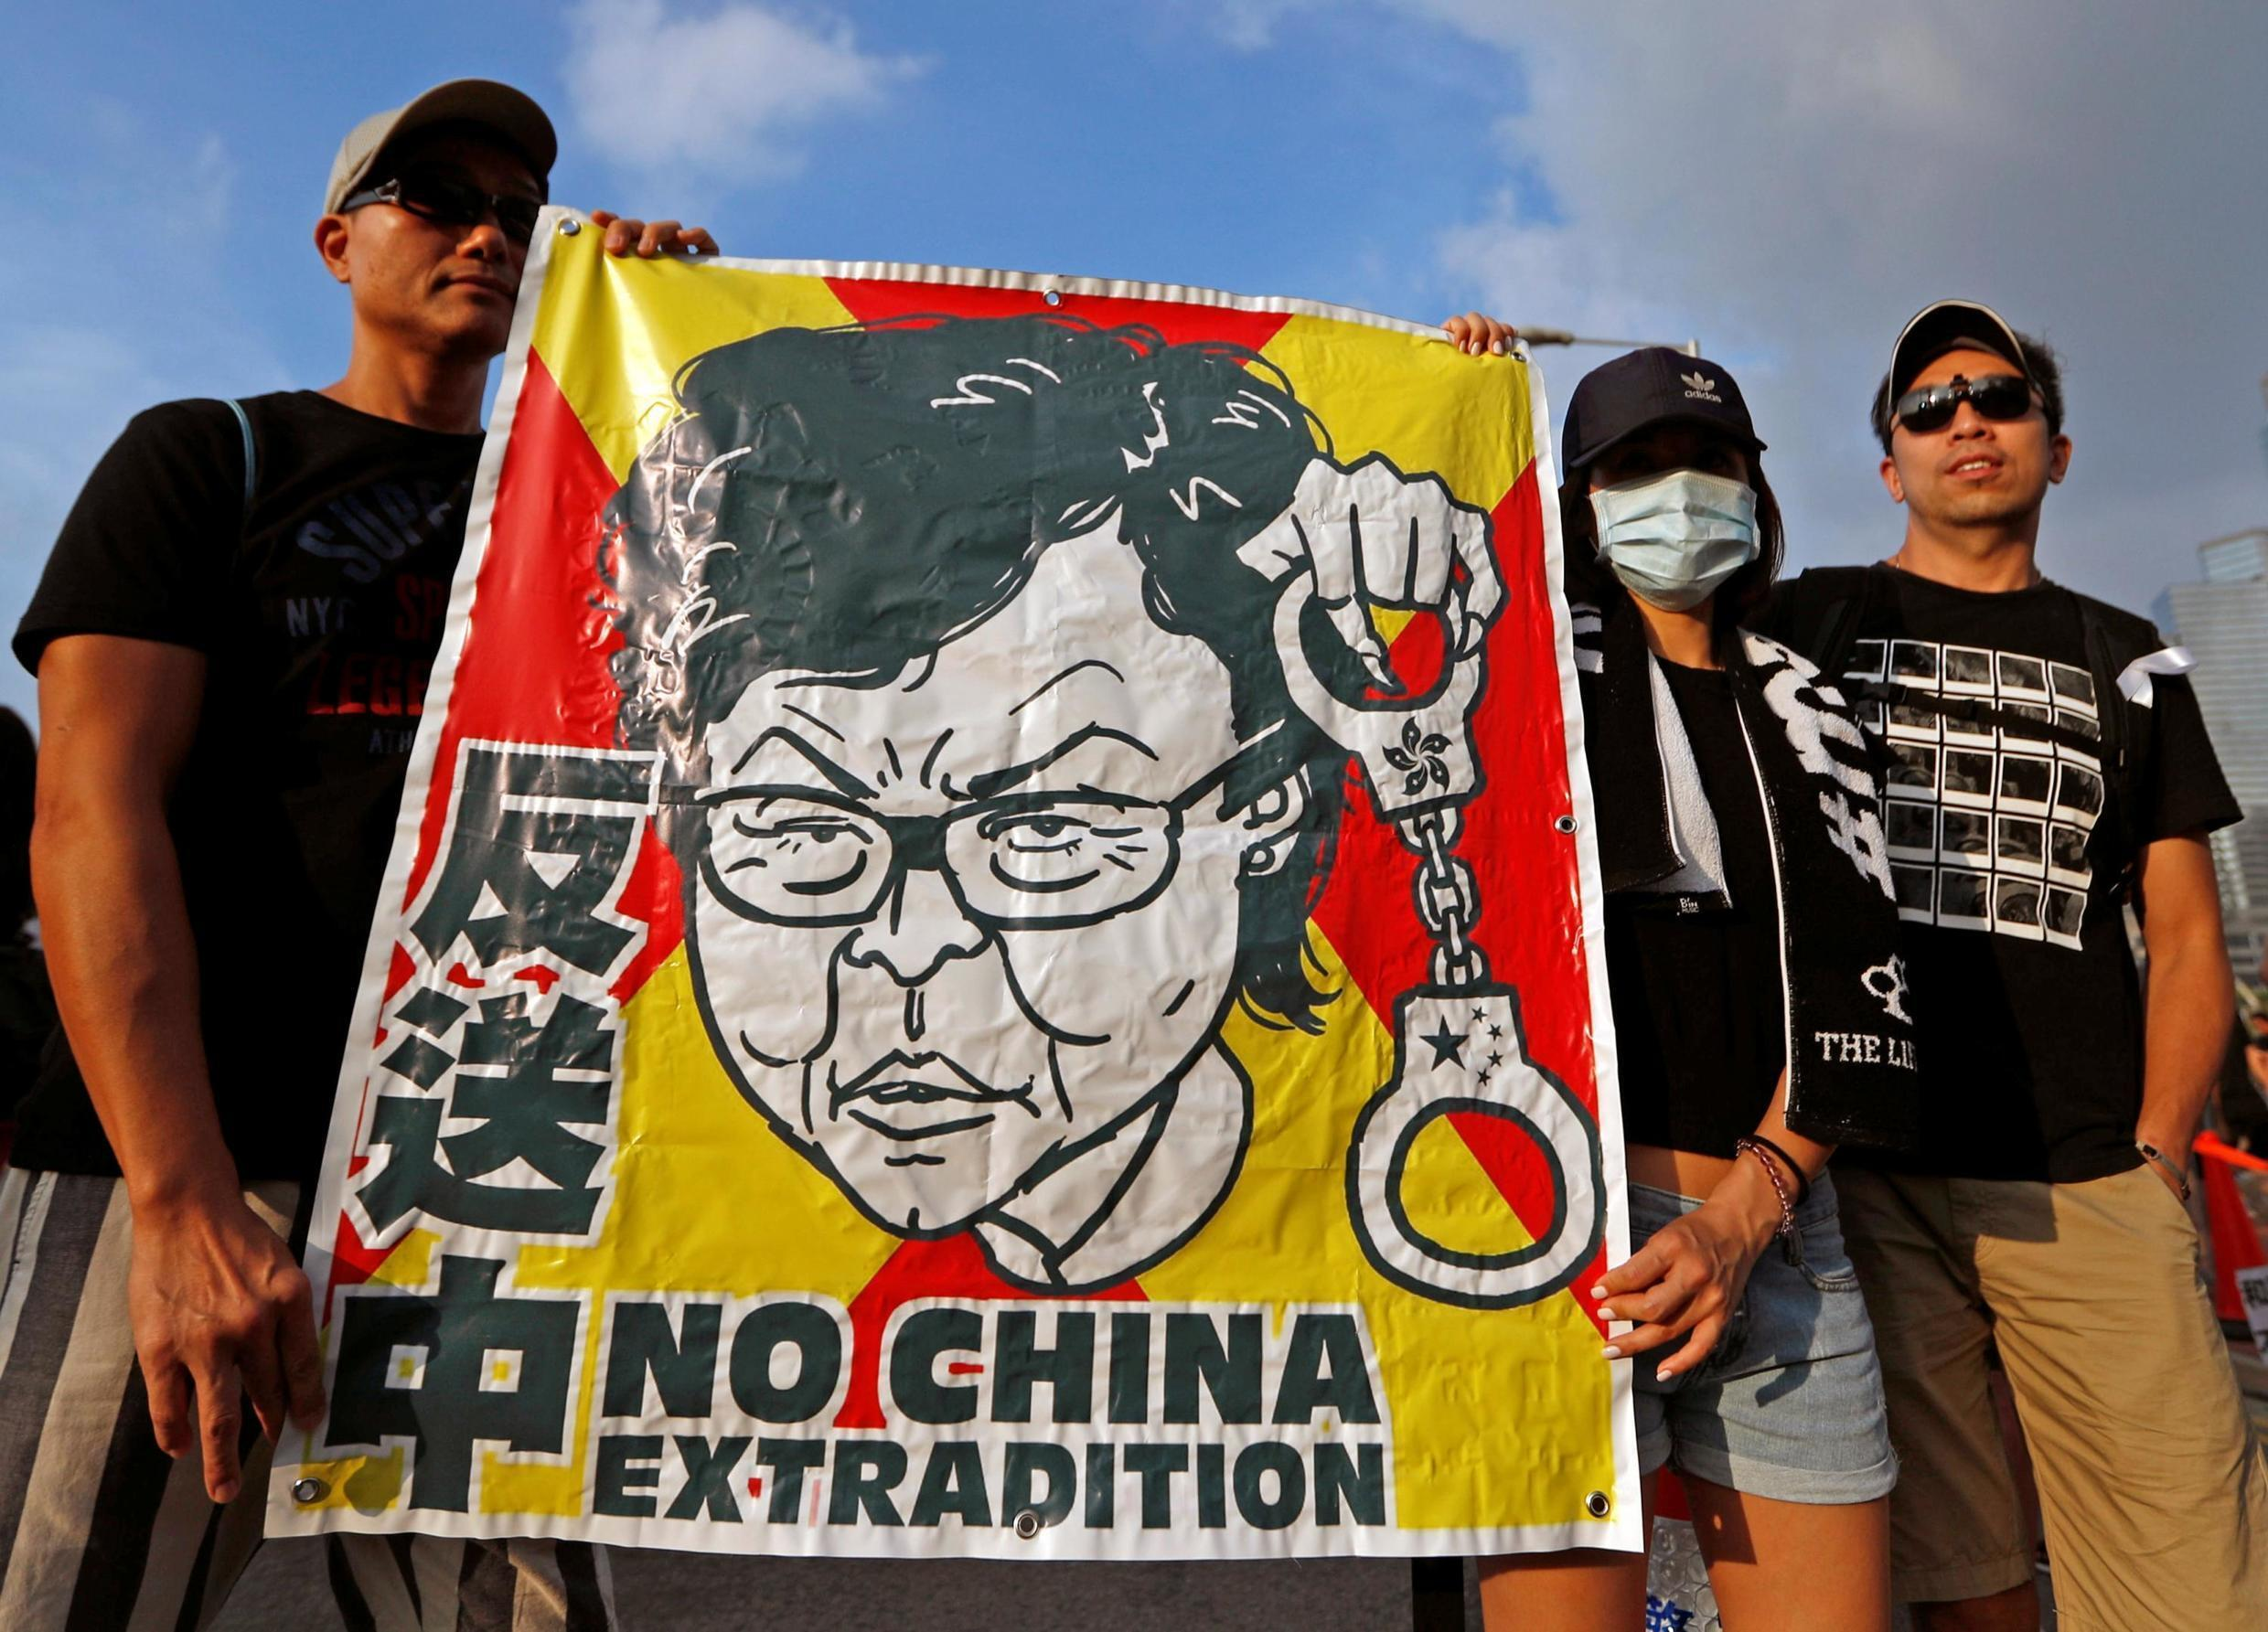 Protesters hold a placard as they attend a demonstration demanding Hong Kong's leaders to step down and withdraw the extradition bill, in Hong Kong, China, June 16, 2019.